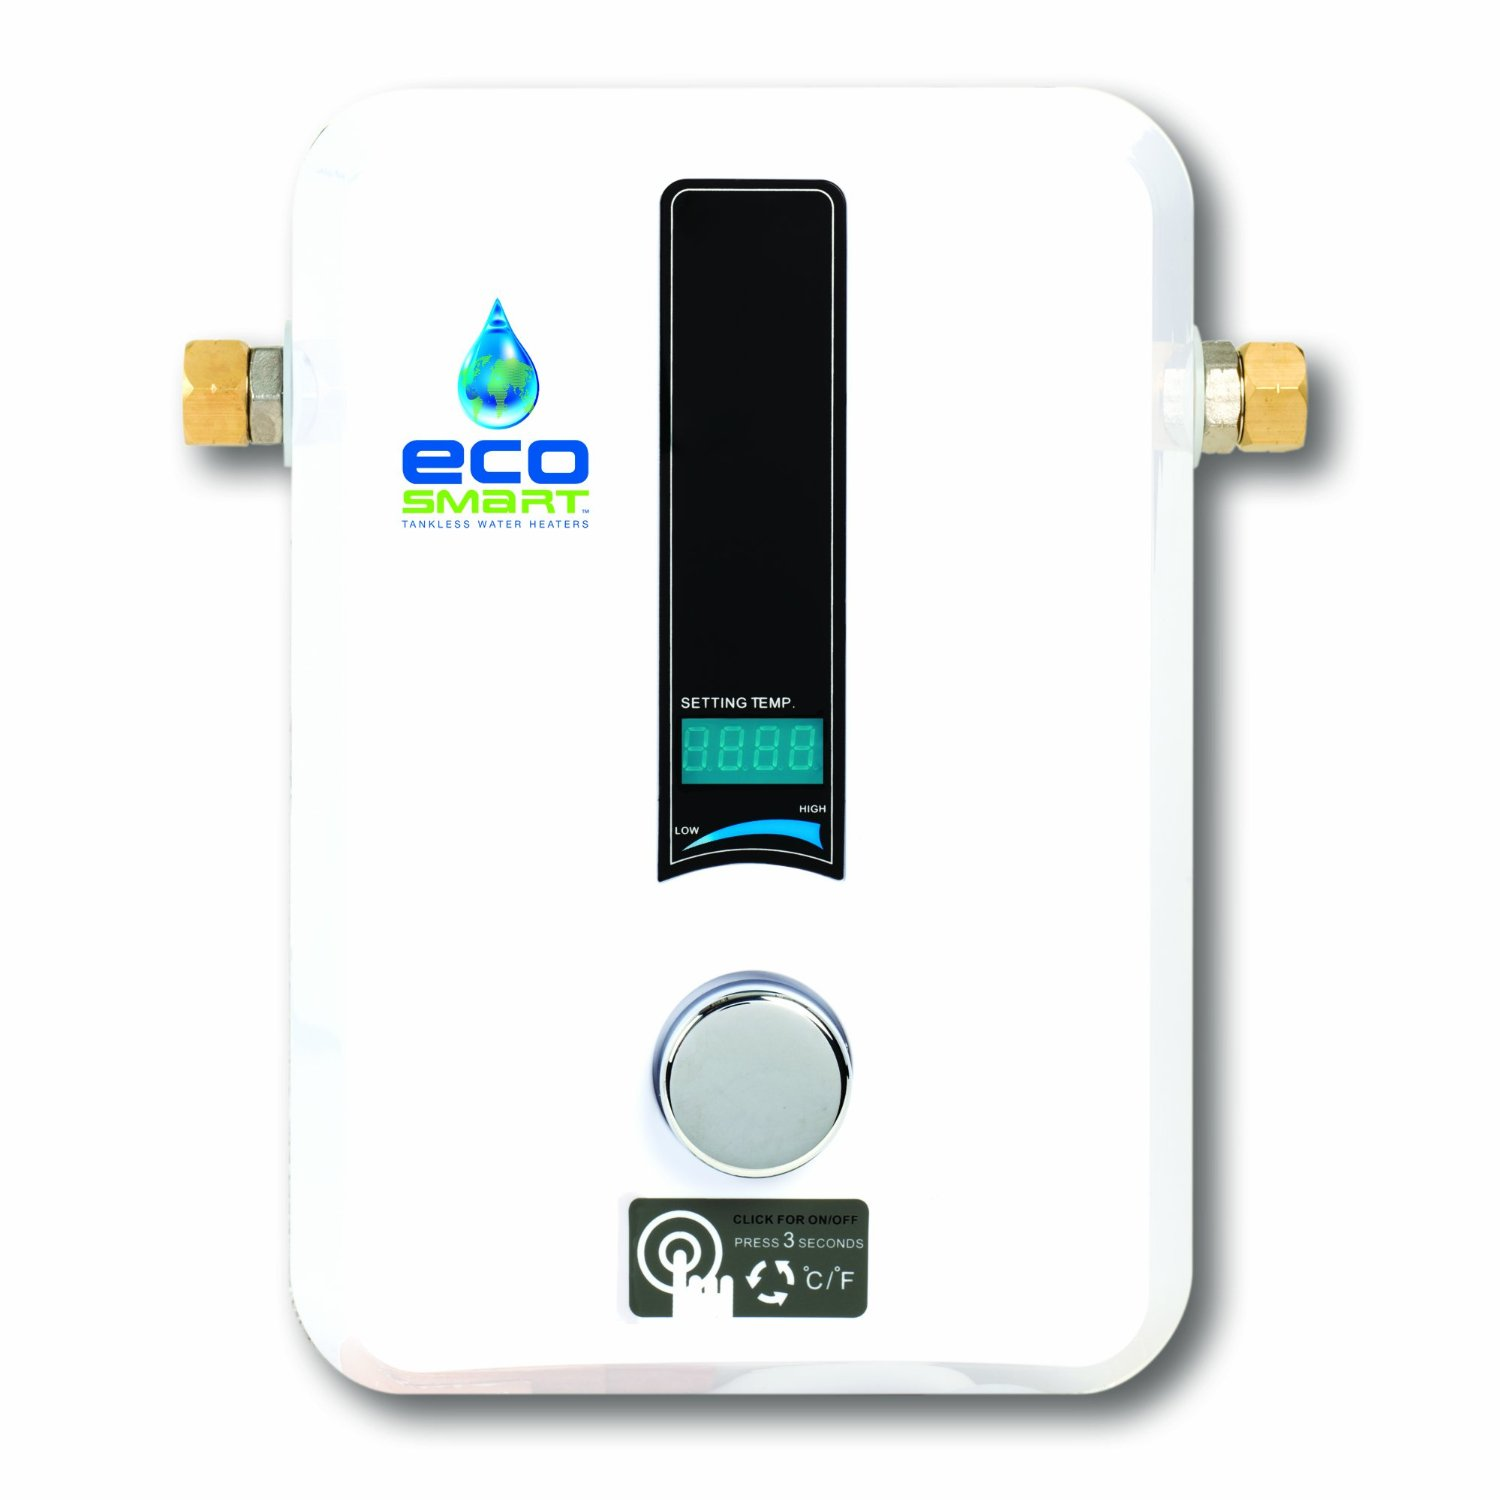 quality tankless water heater